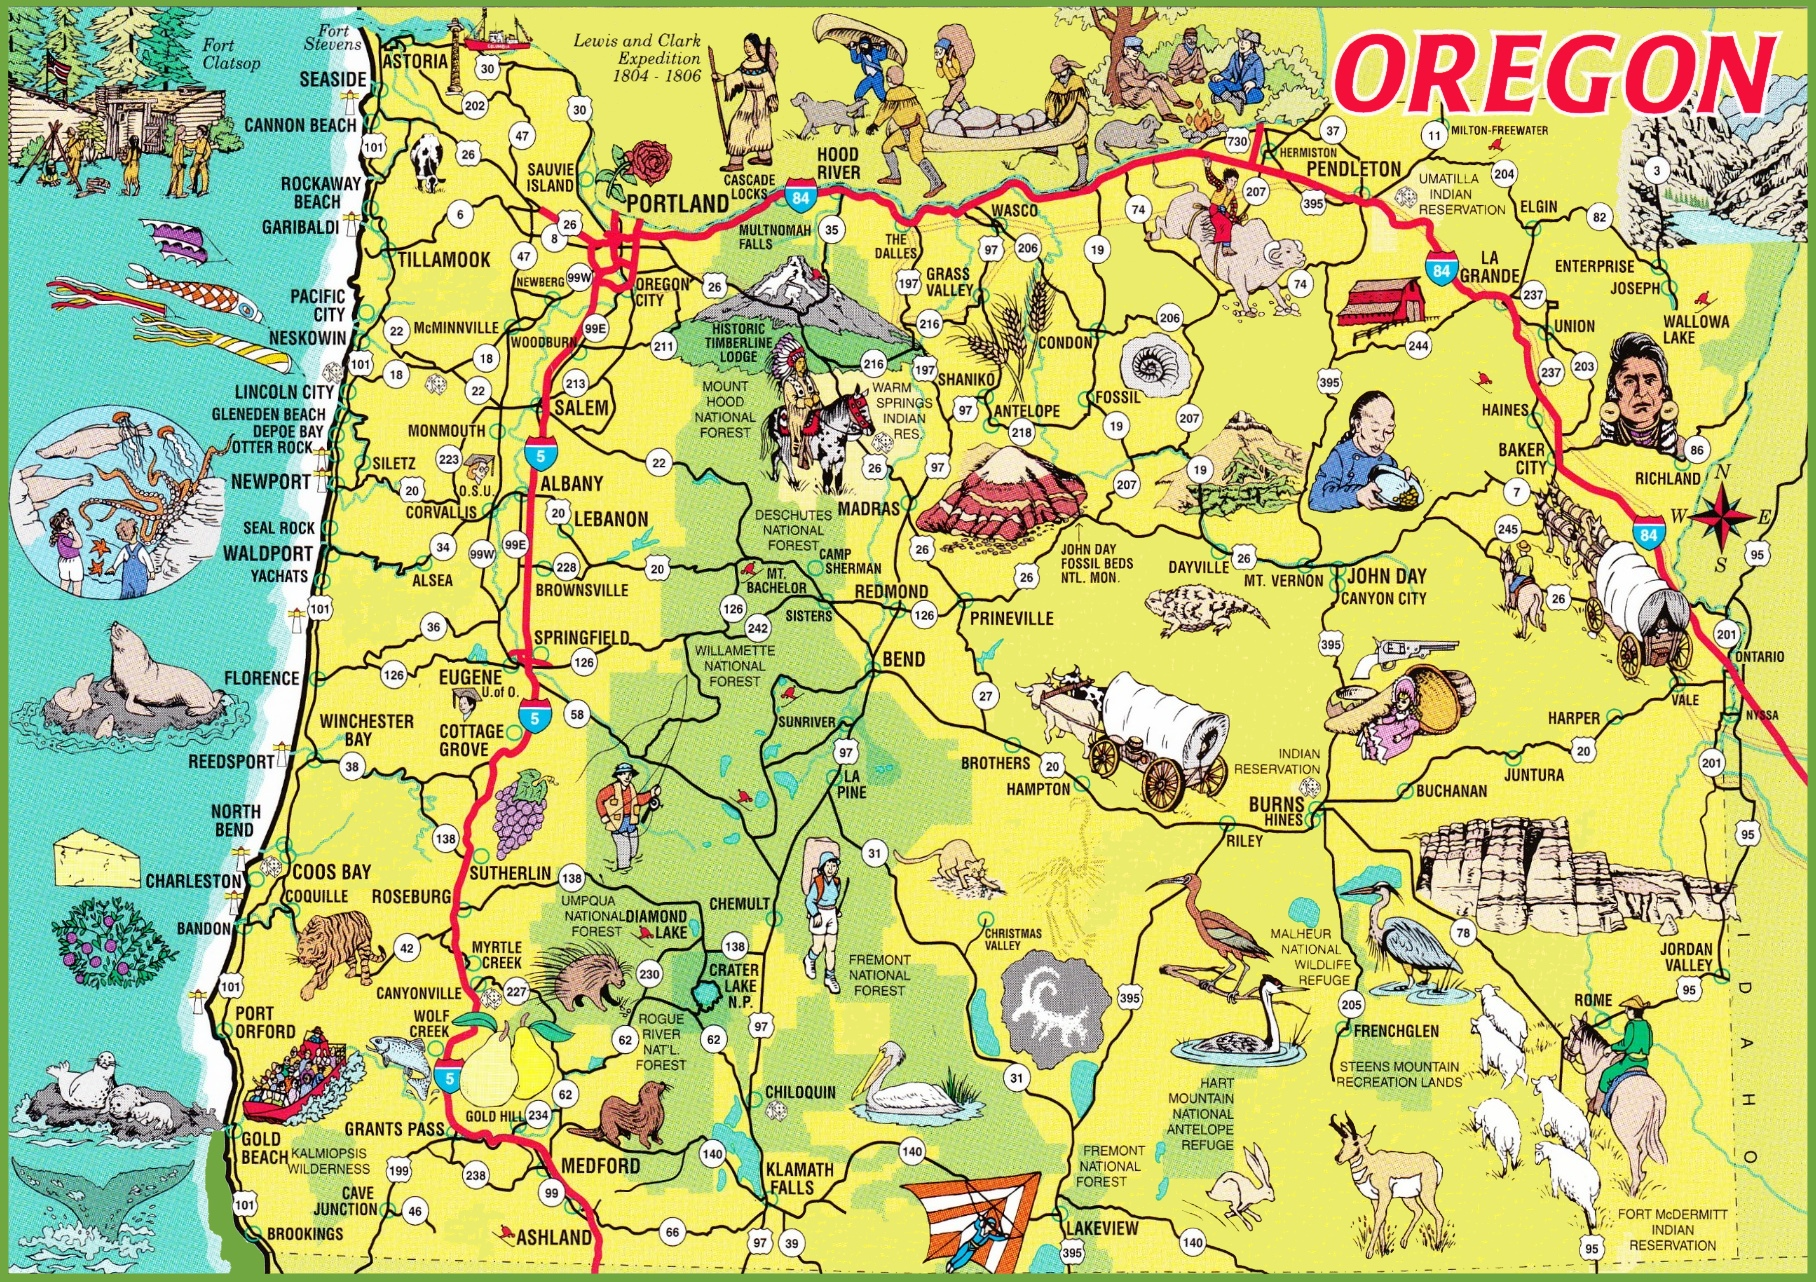 Ontheworldmapcomusastateoregonpictorialtrave - Oregon in the usa map